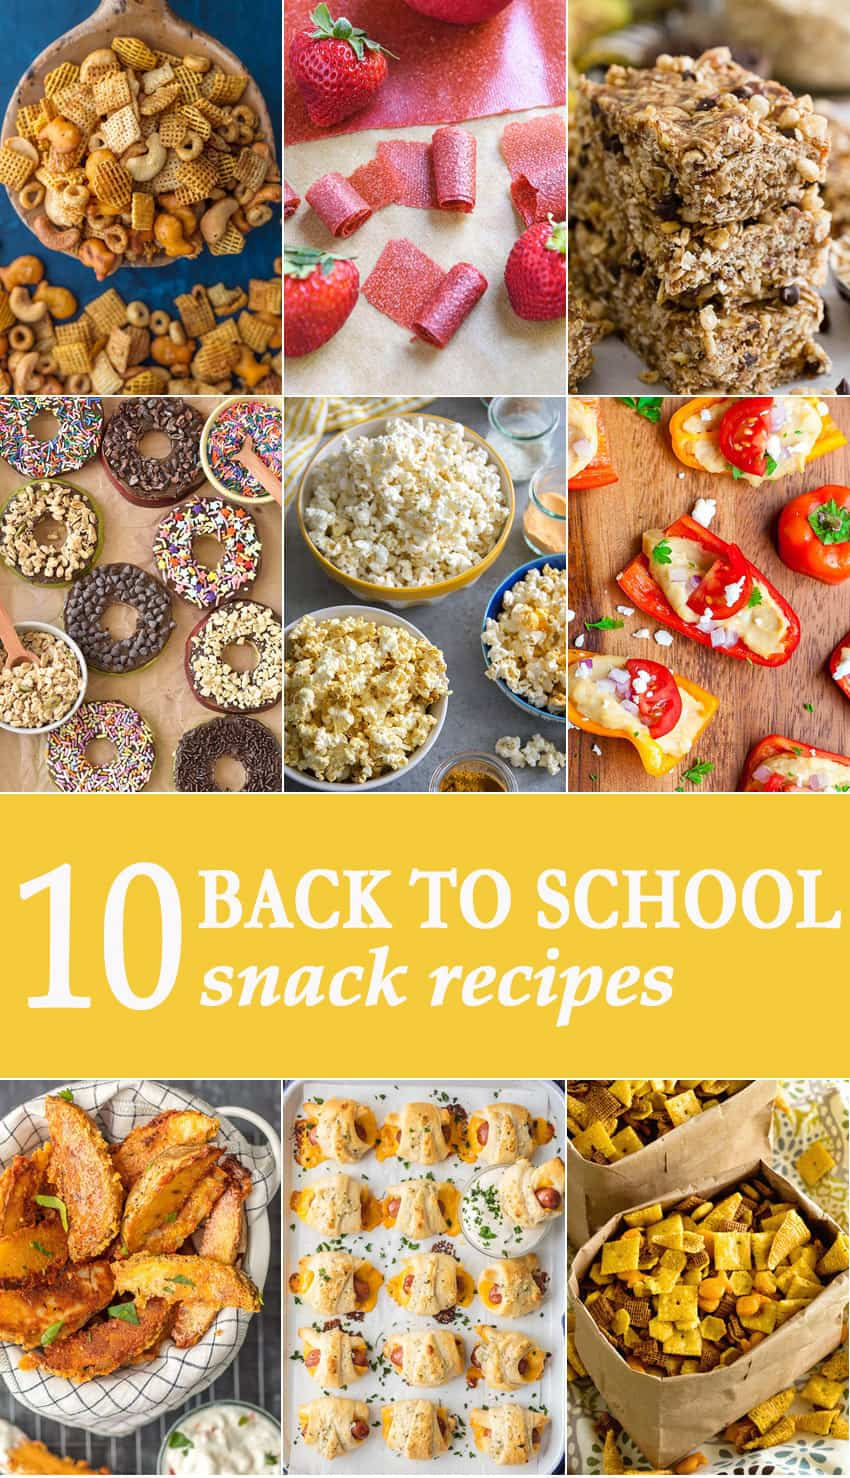 Back to School Snack Recipes | The Cookie Rookie